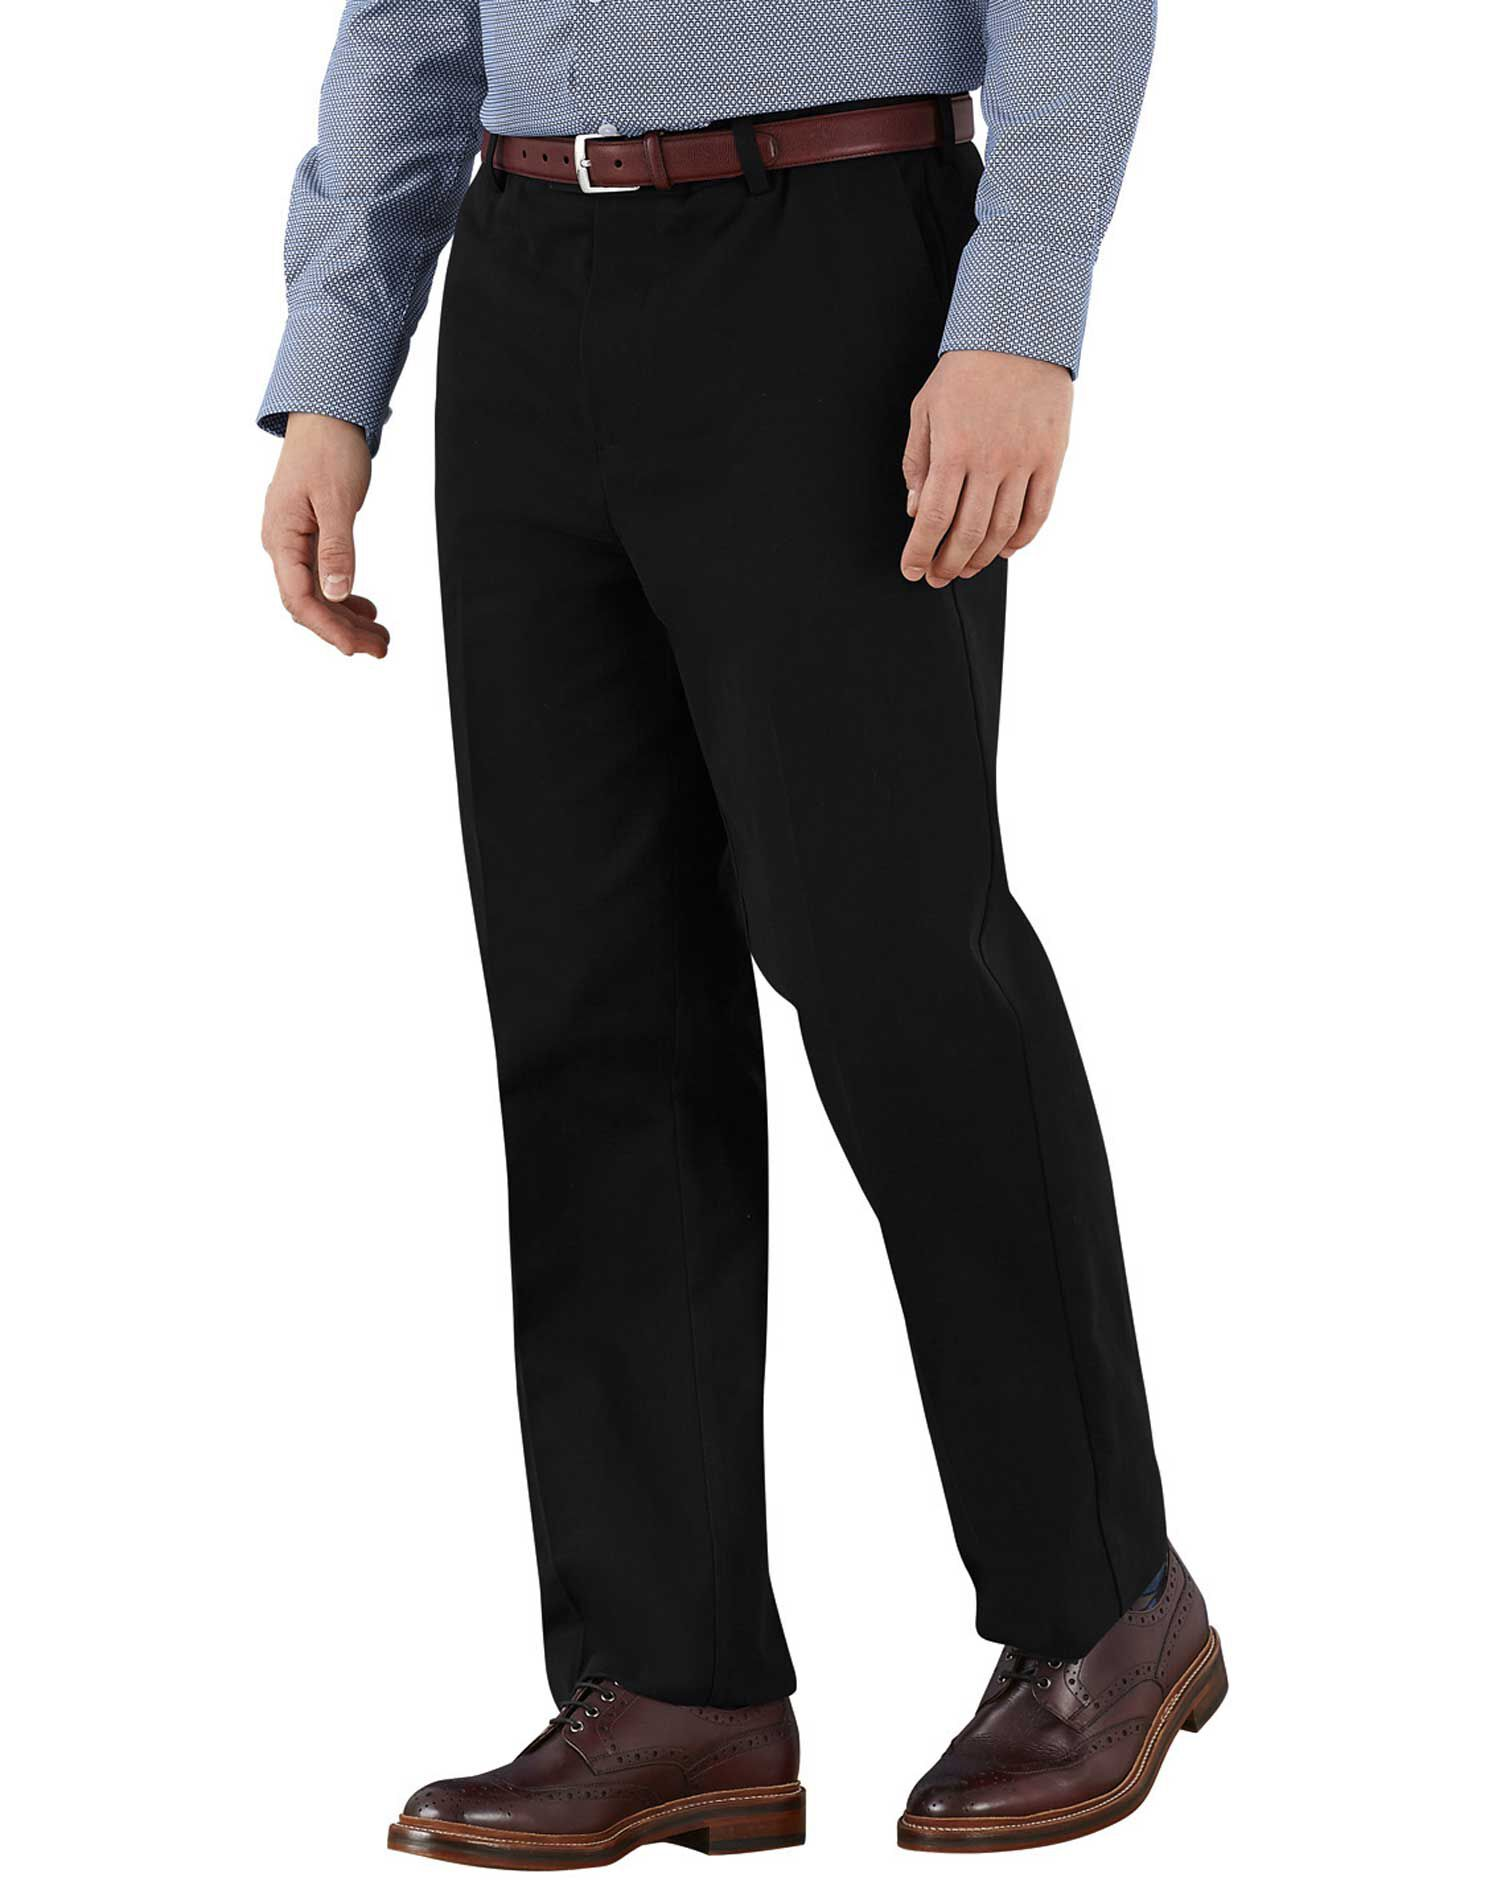 Black Classic Fit Flat Front Non-Iron Cotton Chino Trousers Size W40 L34 by Charles Tyrwhitt